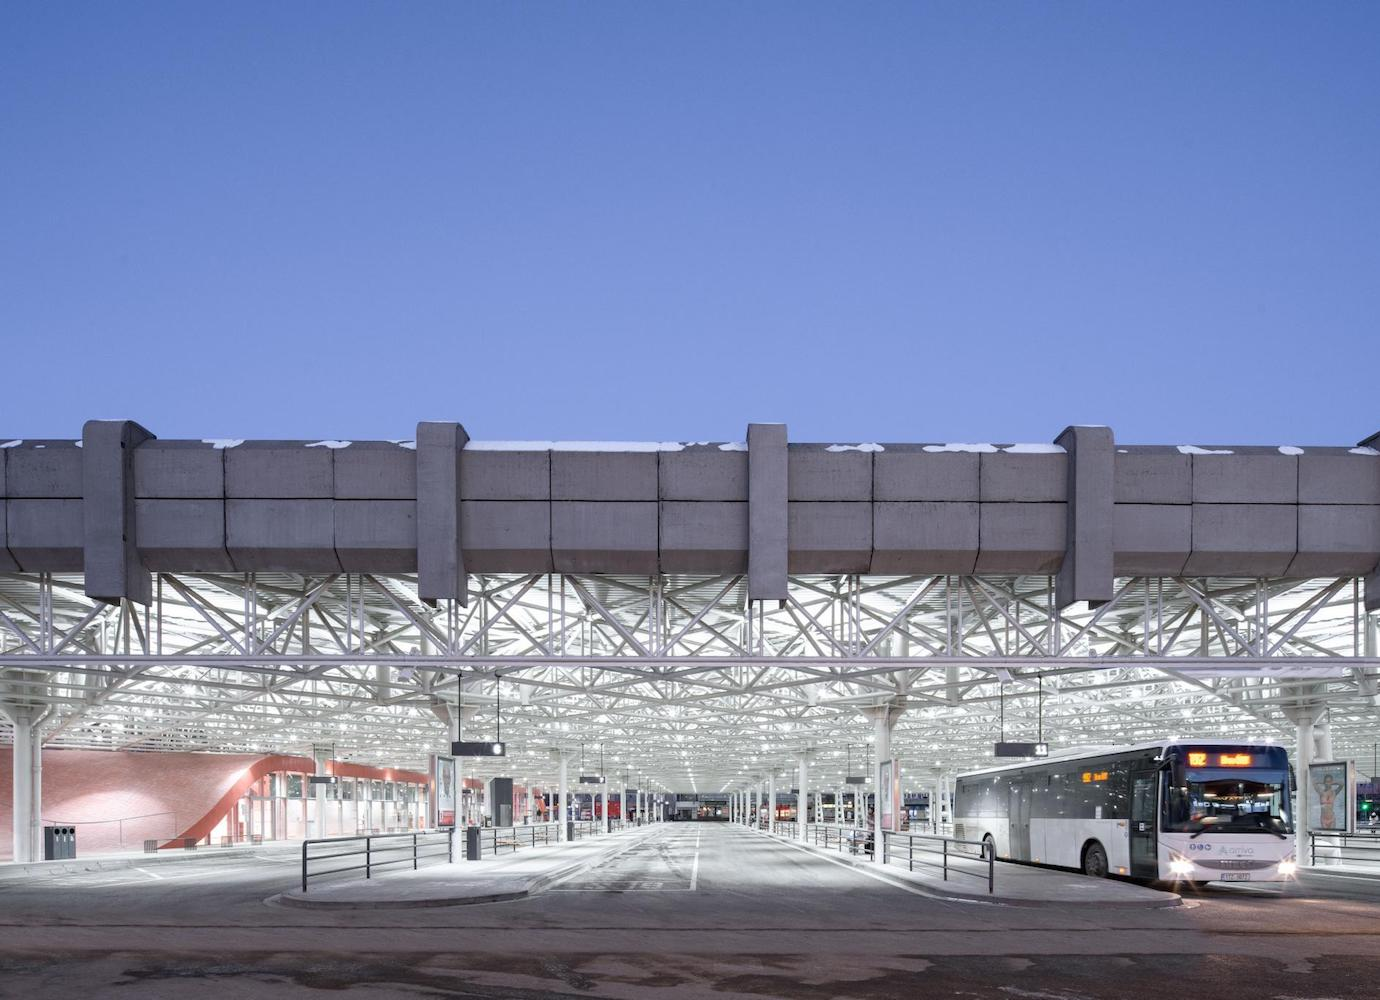 Brno's brutalist bus station reopens for new journeys | Concrete Ideas